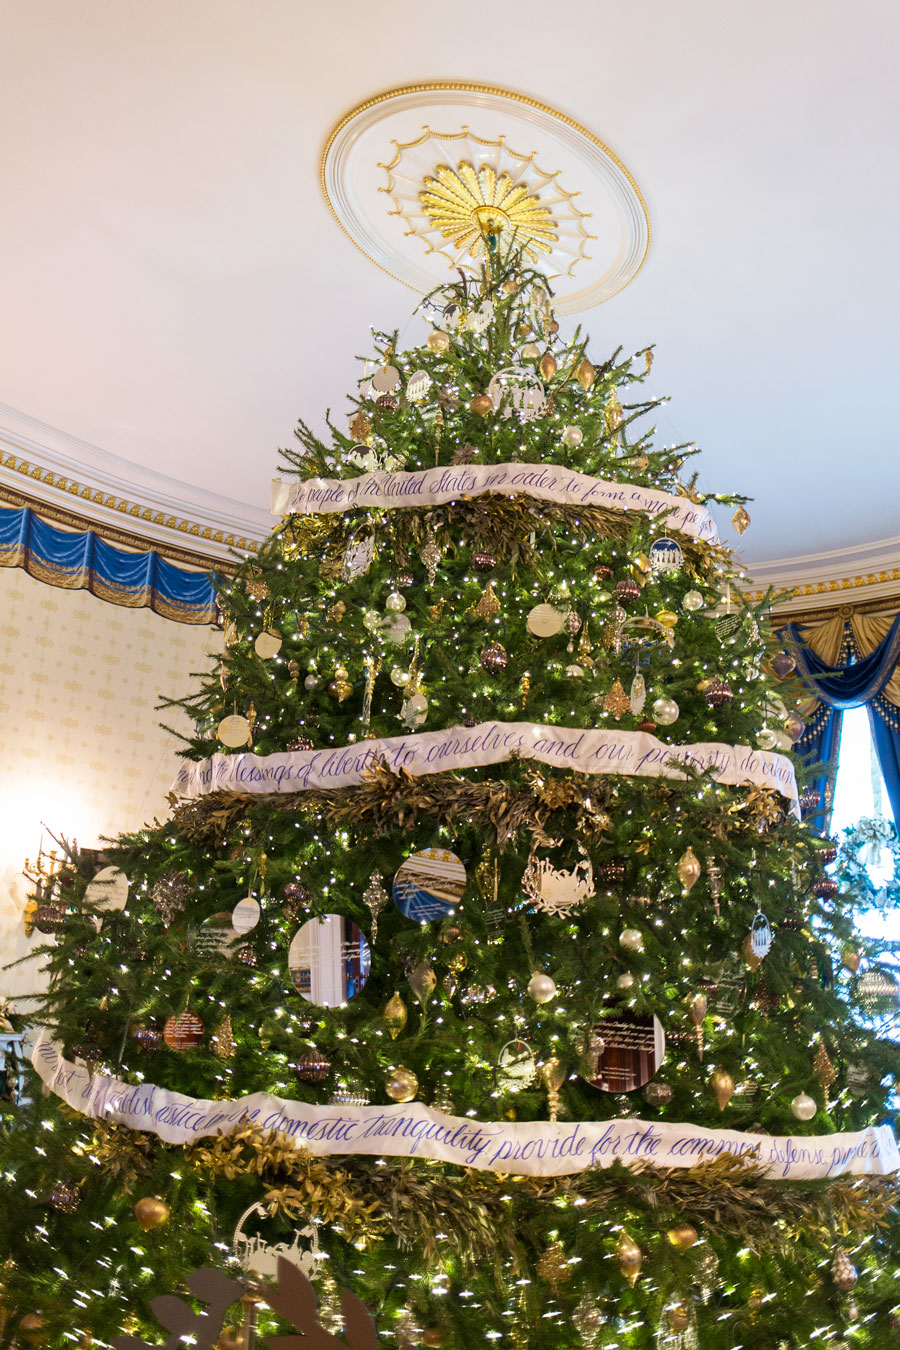 this years iconic blue room christmas tree celebrates we the people as it